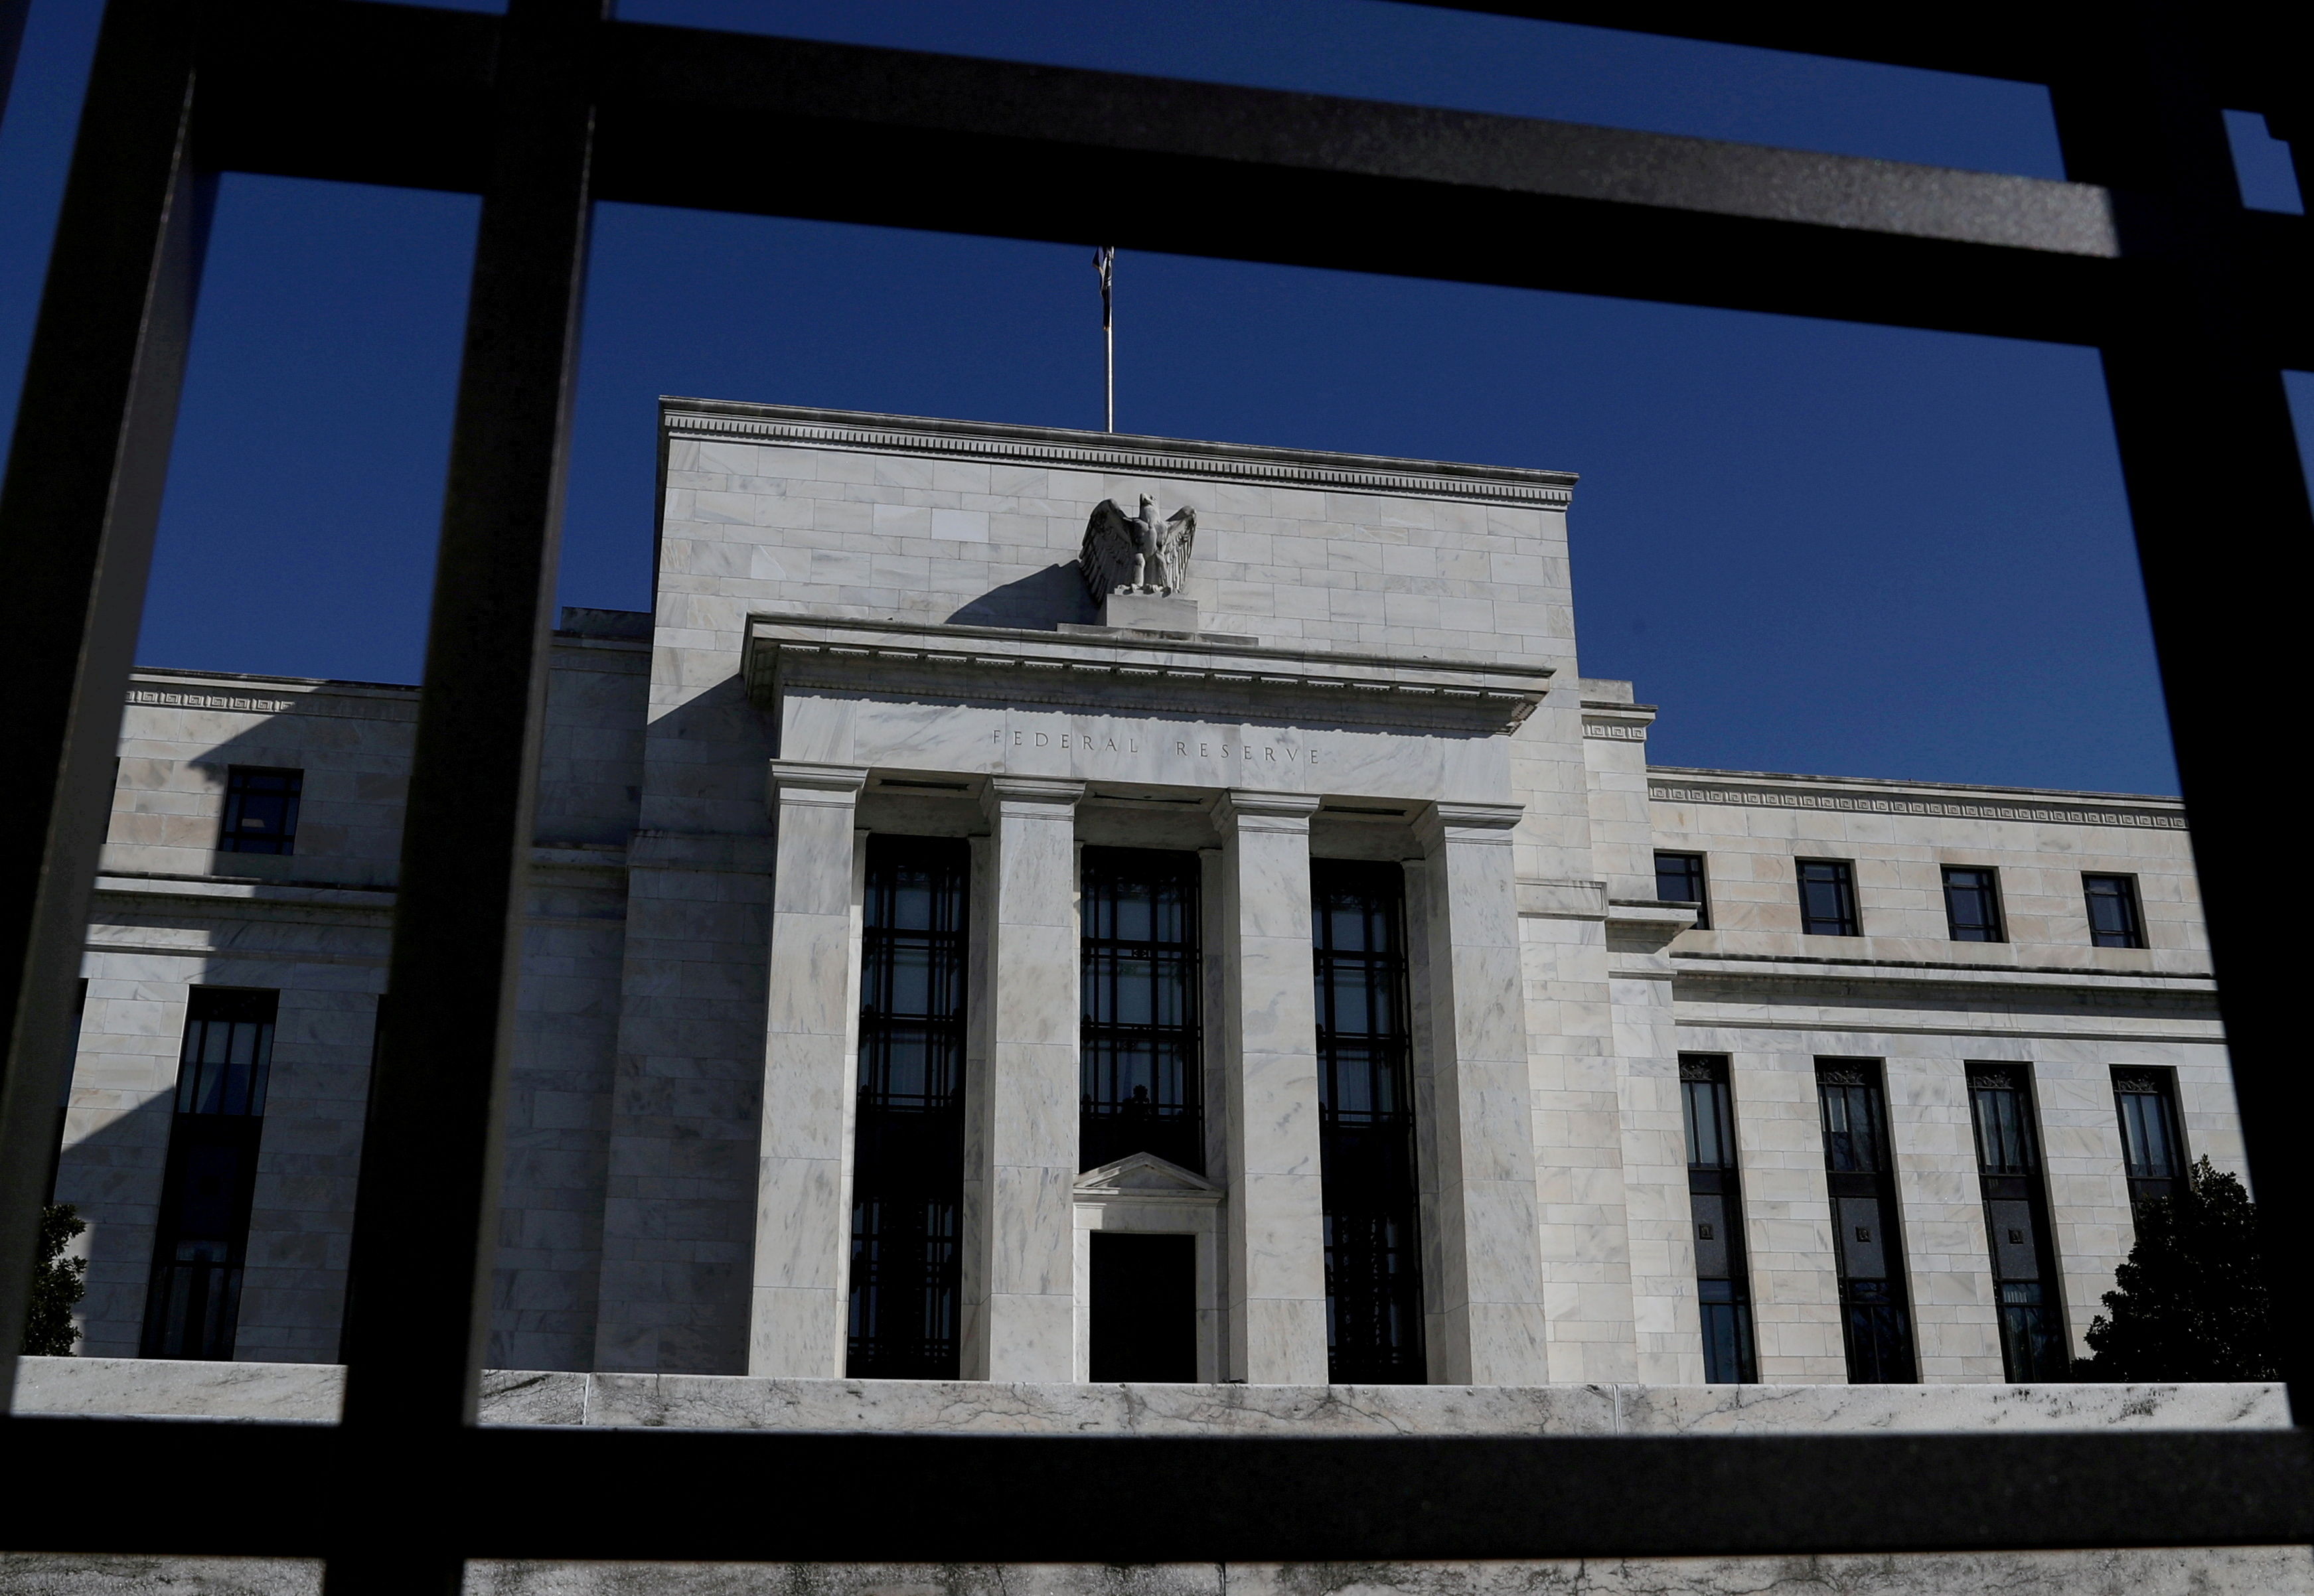 Federal Reserve Board building is pictured in Washington, U.S., March 19, 2019. REUTERS/Leah Millis